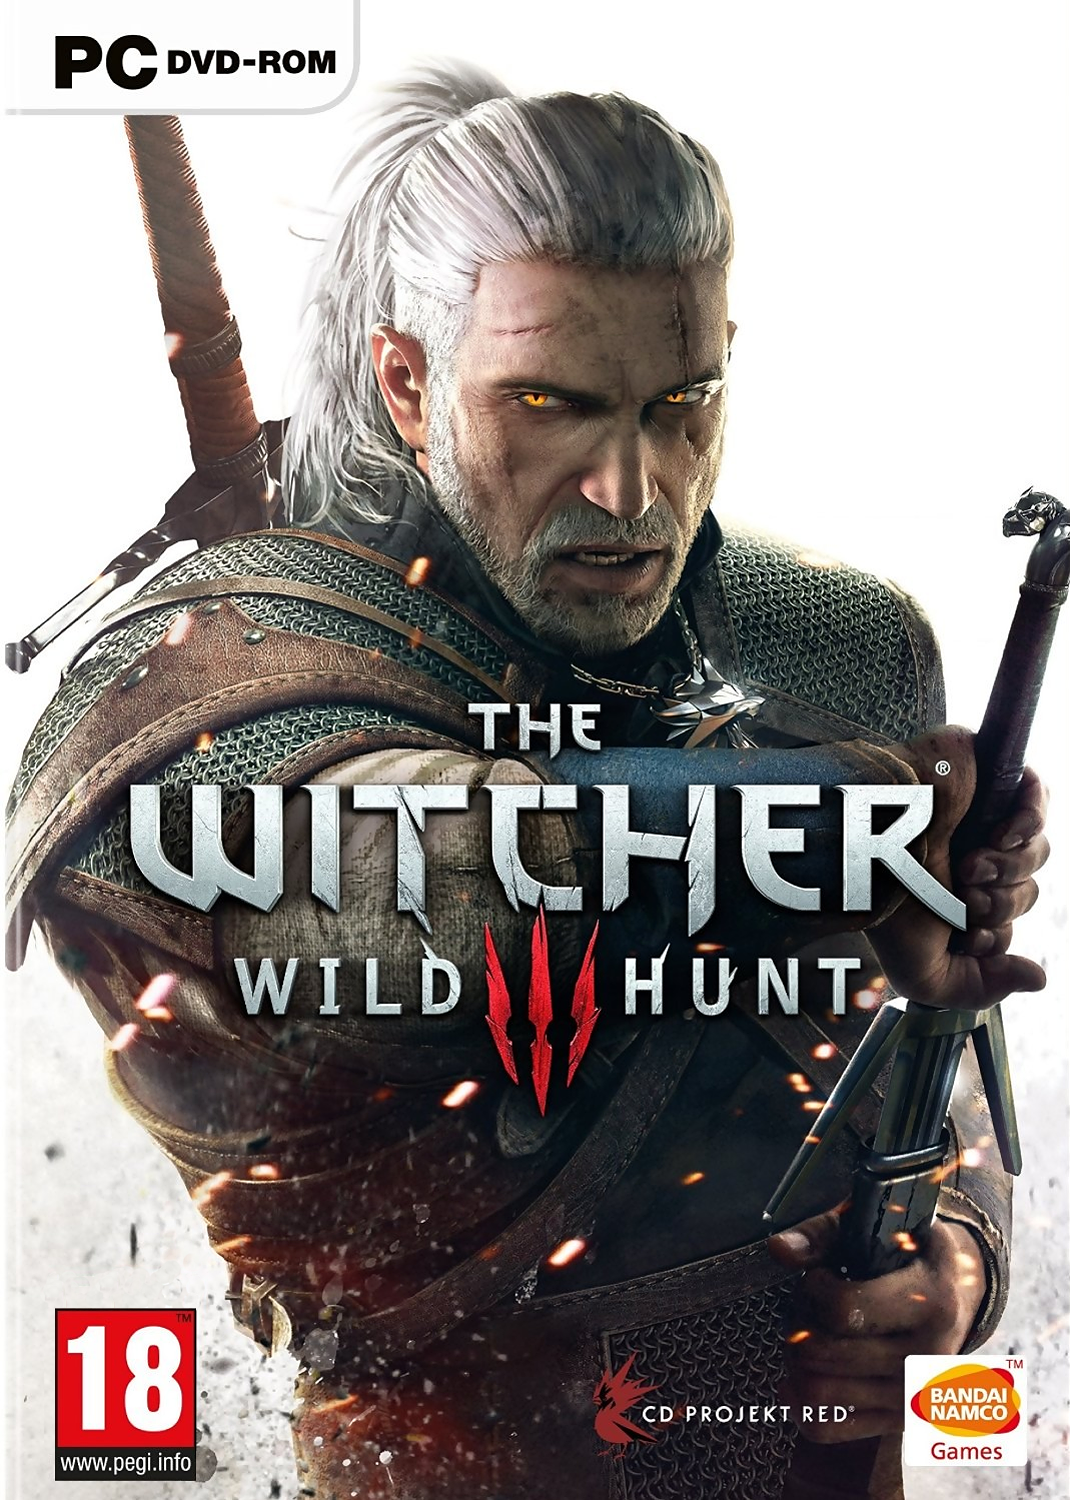 The witcher 3 wild hunt witcher wiki fandom powered by wikia the witcher 3 wild hunt solutioingenieria Image collections